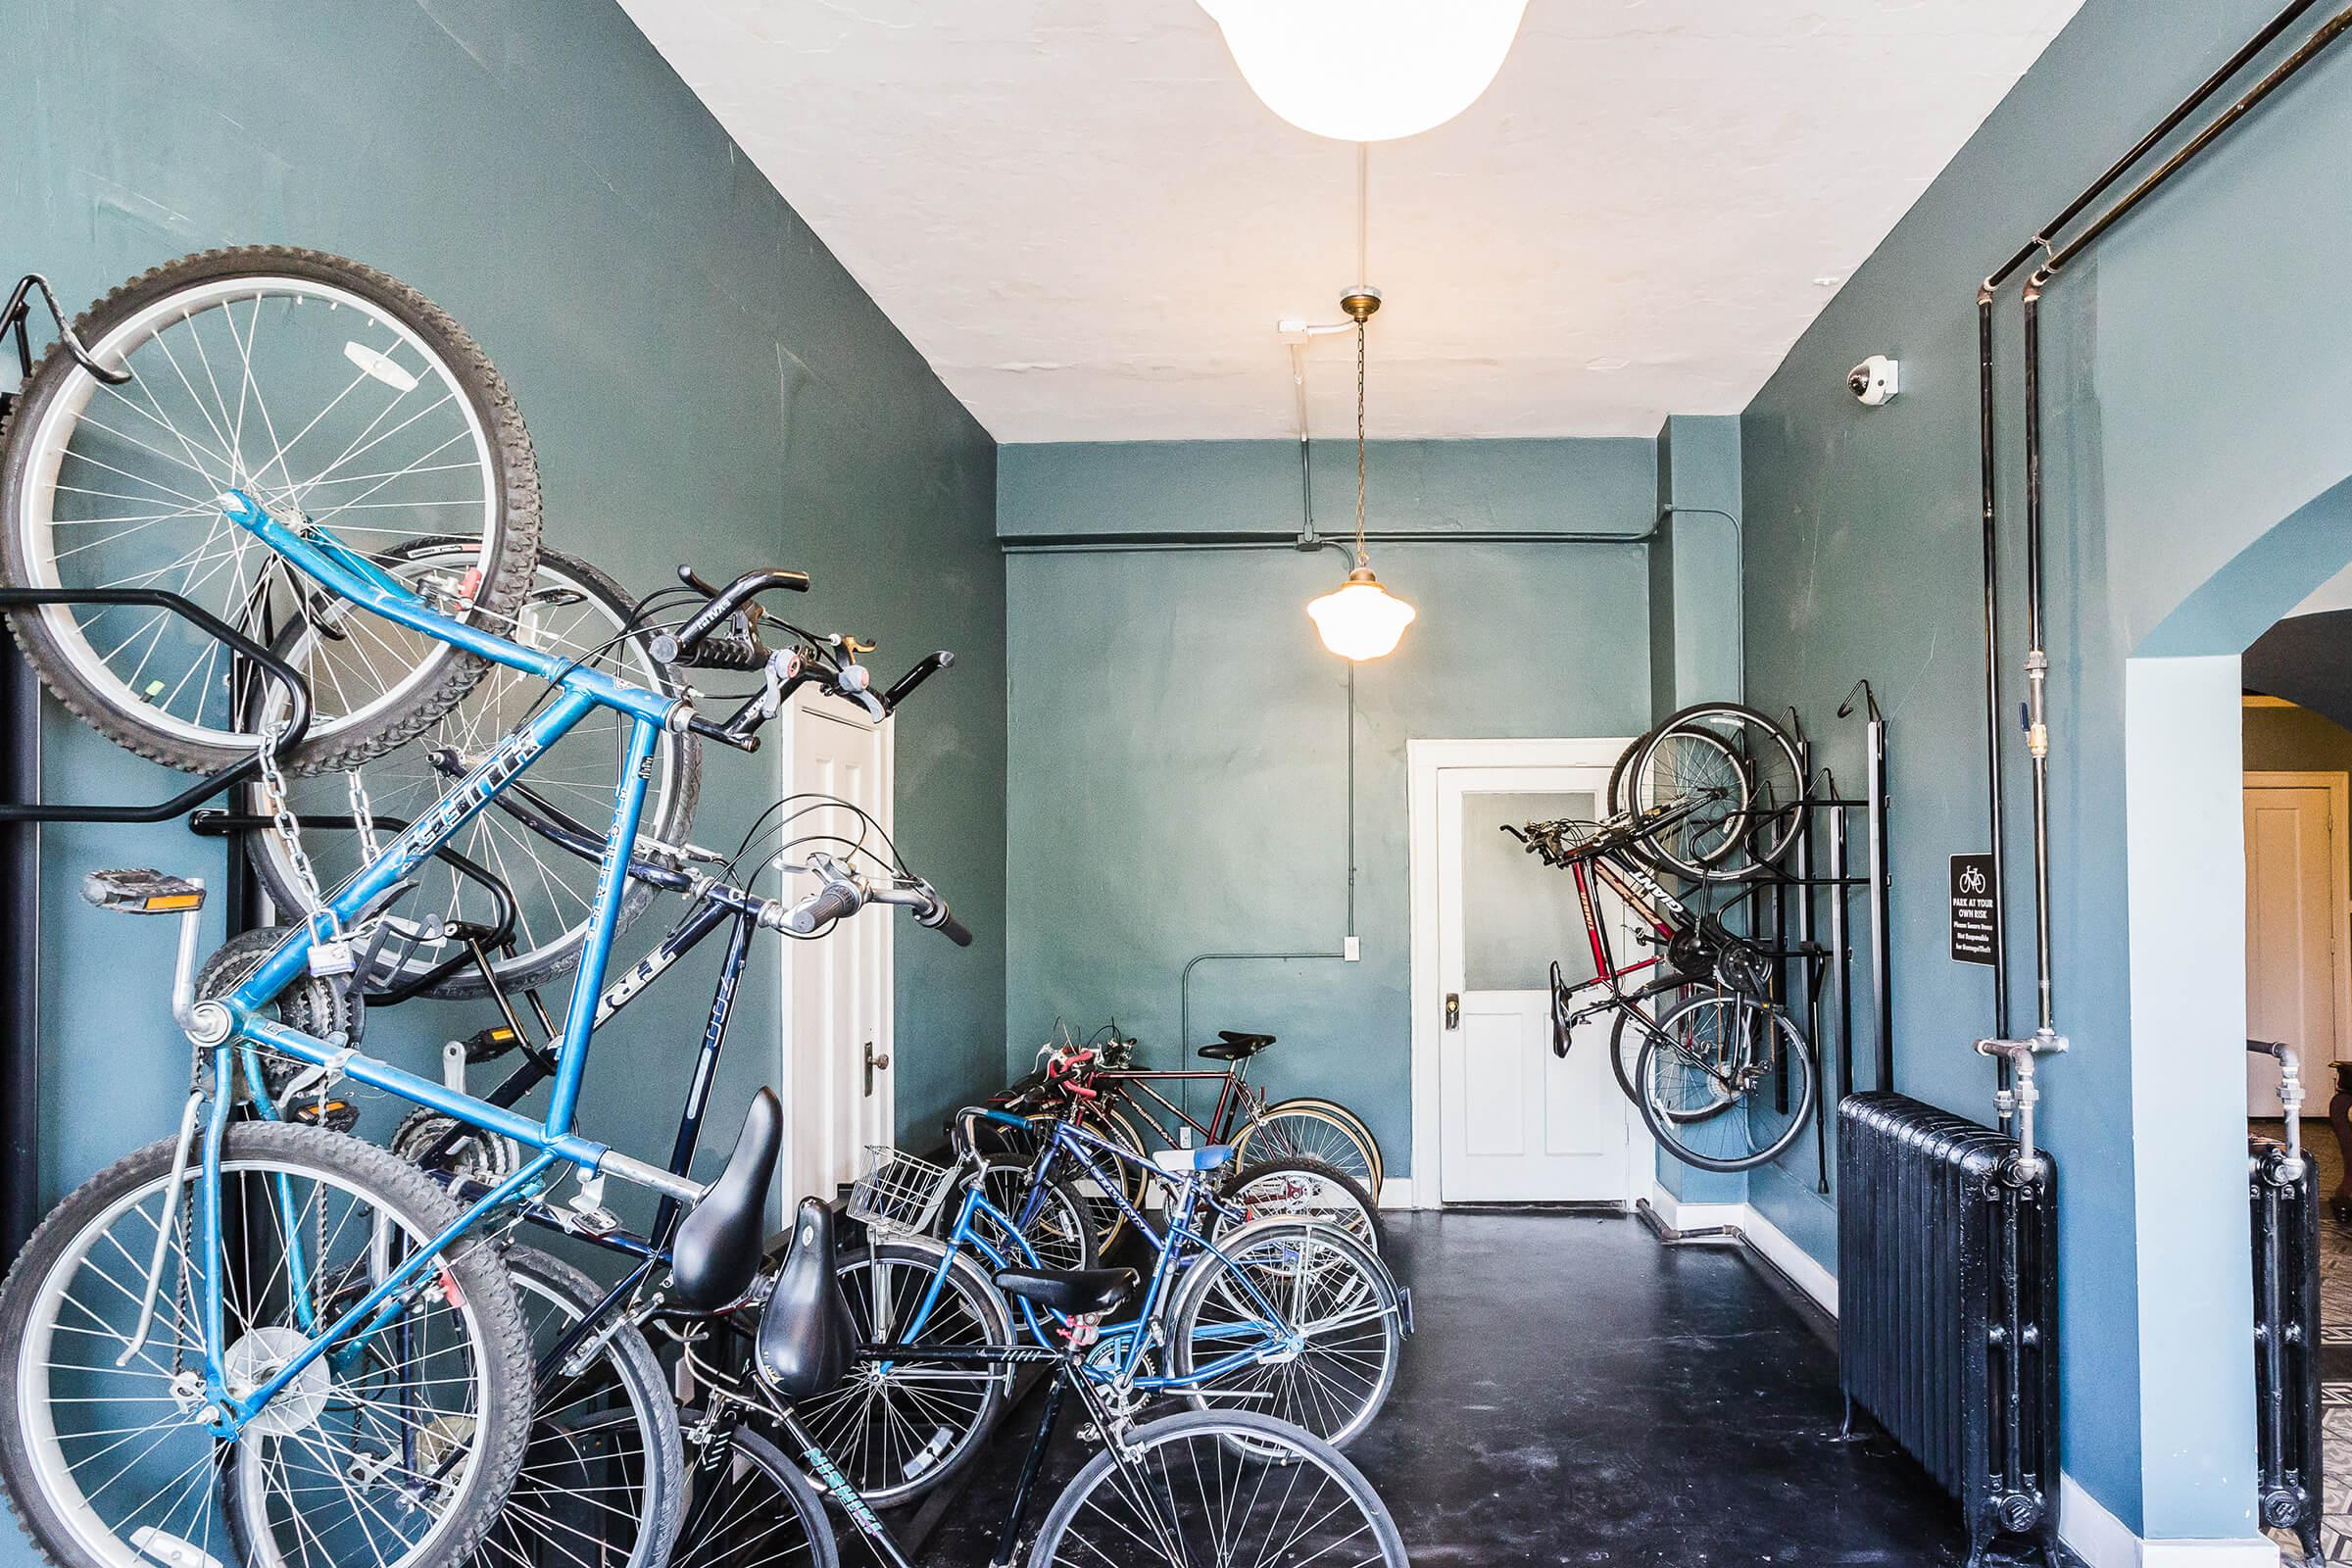 a bicycle parked on the side of the room